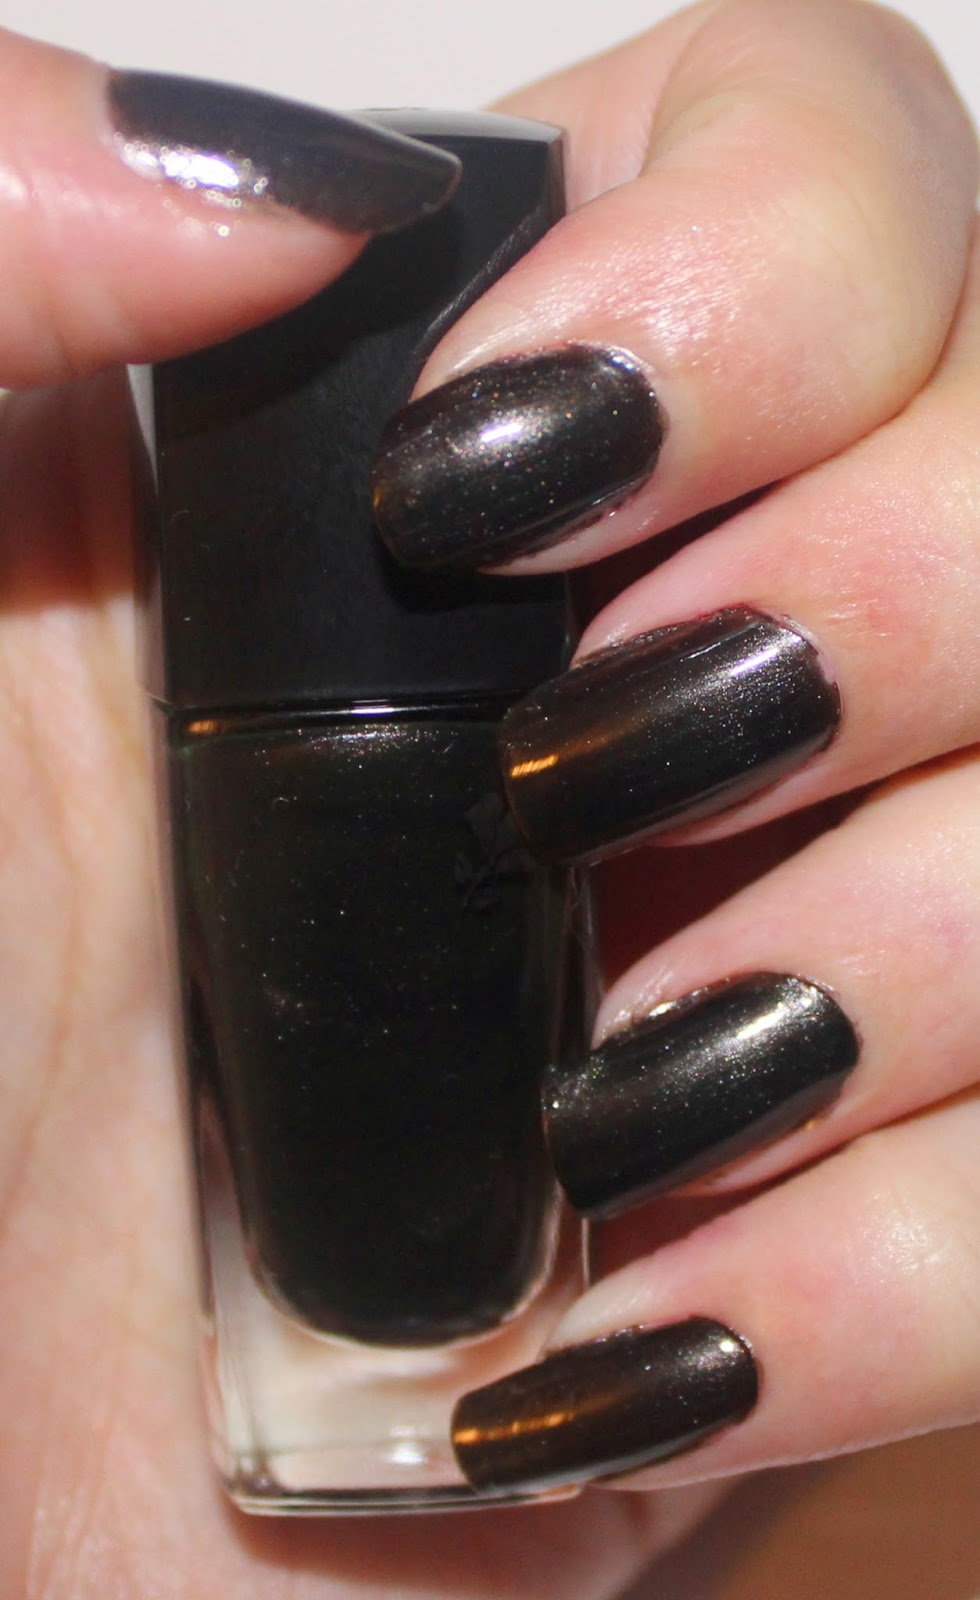 Lancôme French Idole Vernis in Love Tourmaline Noire